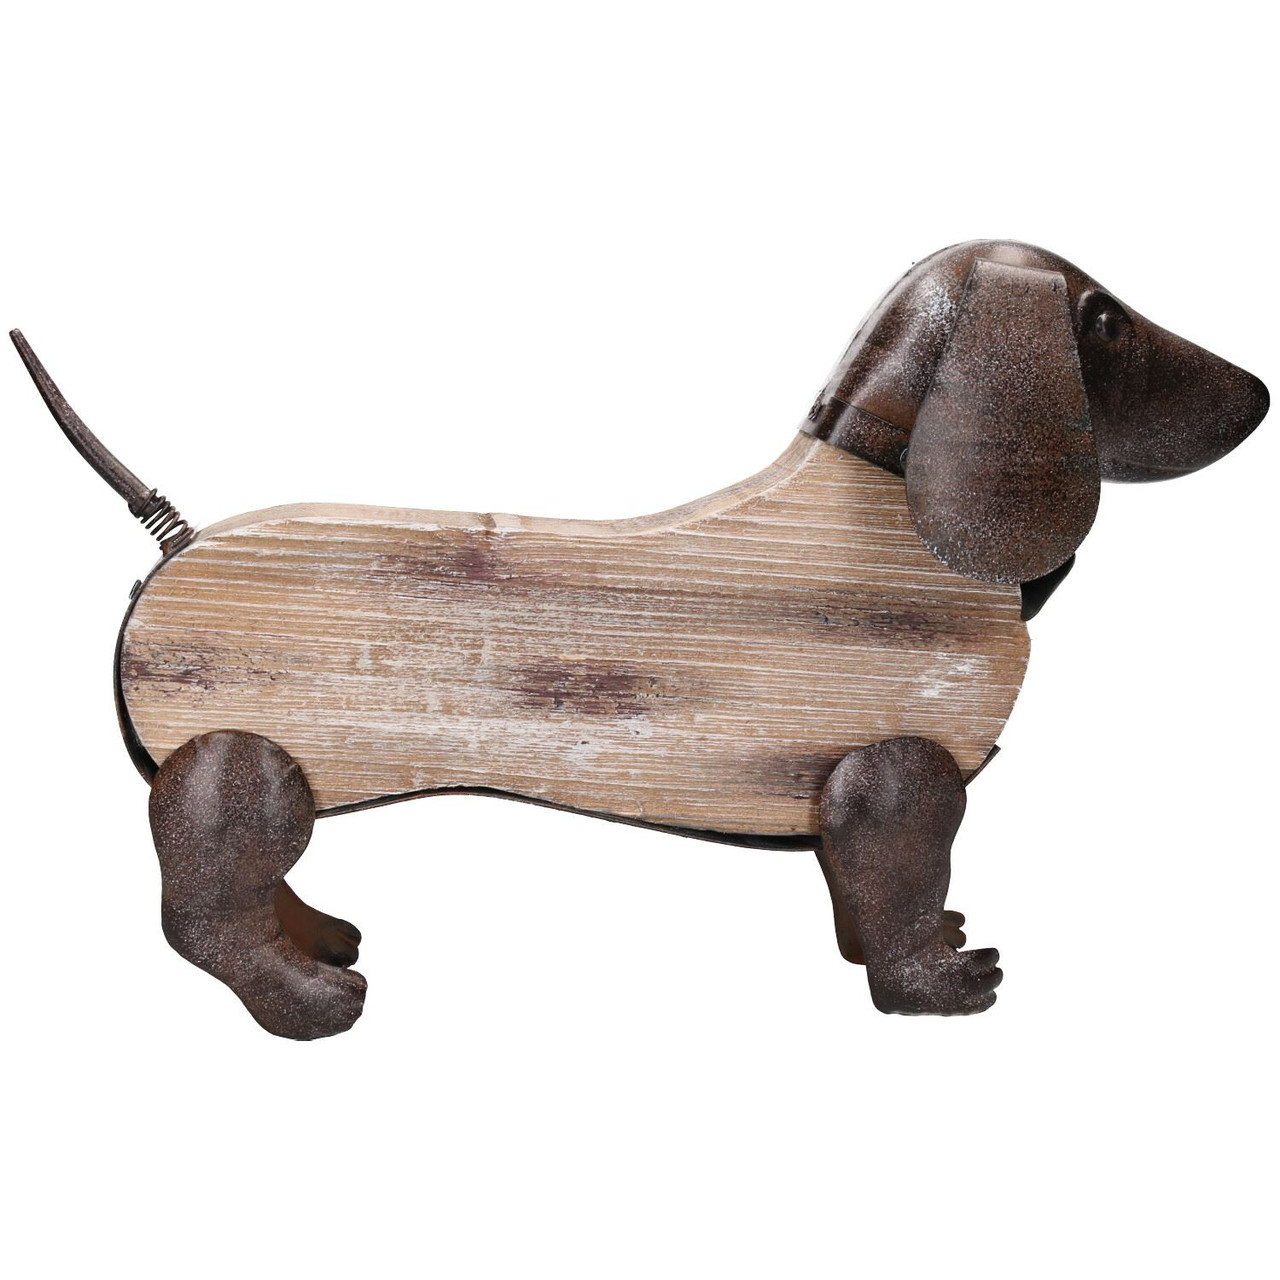 Rustic Wood Metal Hand Crafted Dachshund Dog Garden Sculpture Ornament